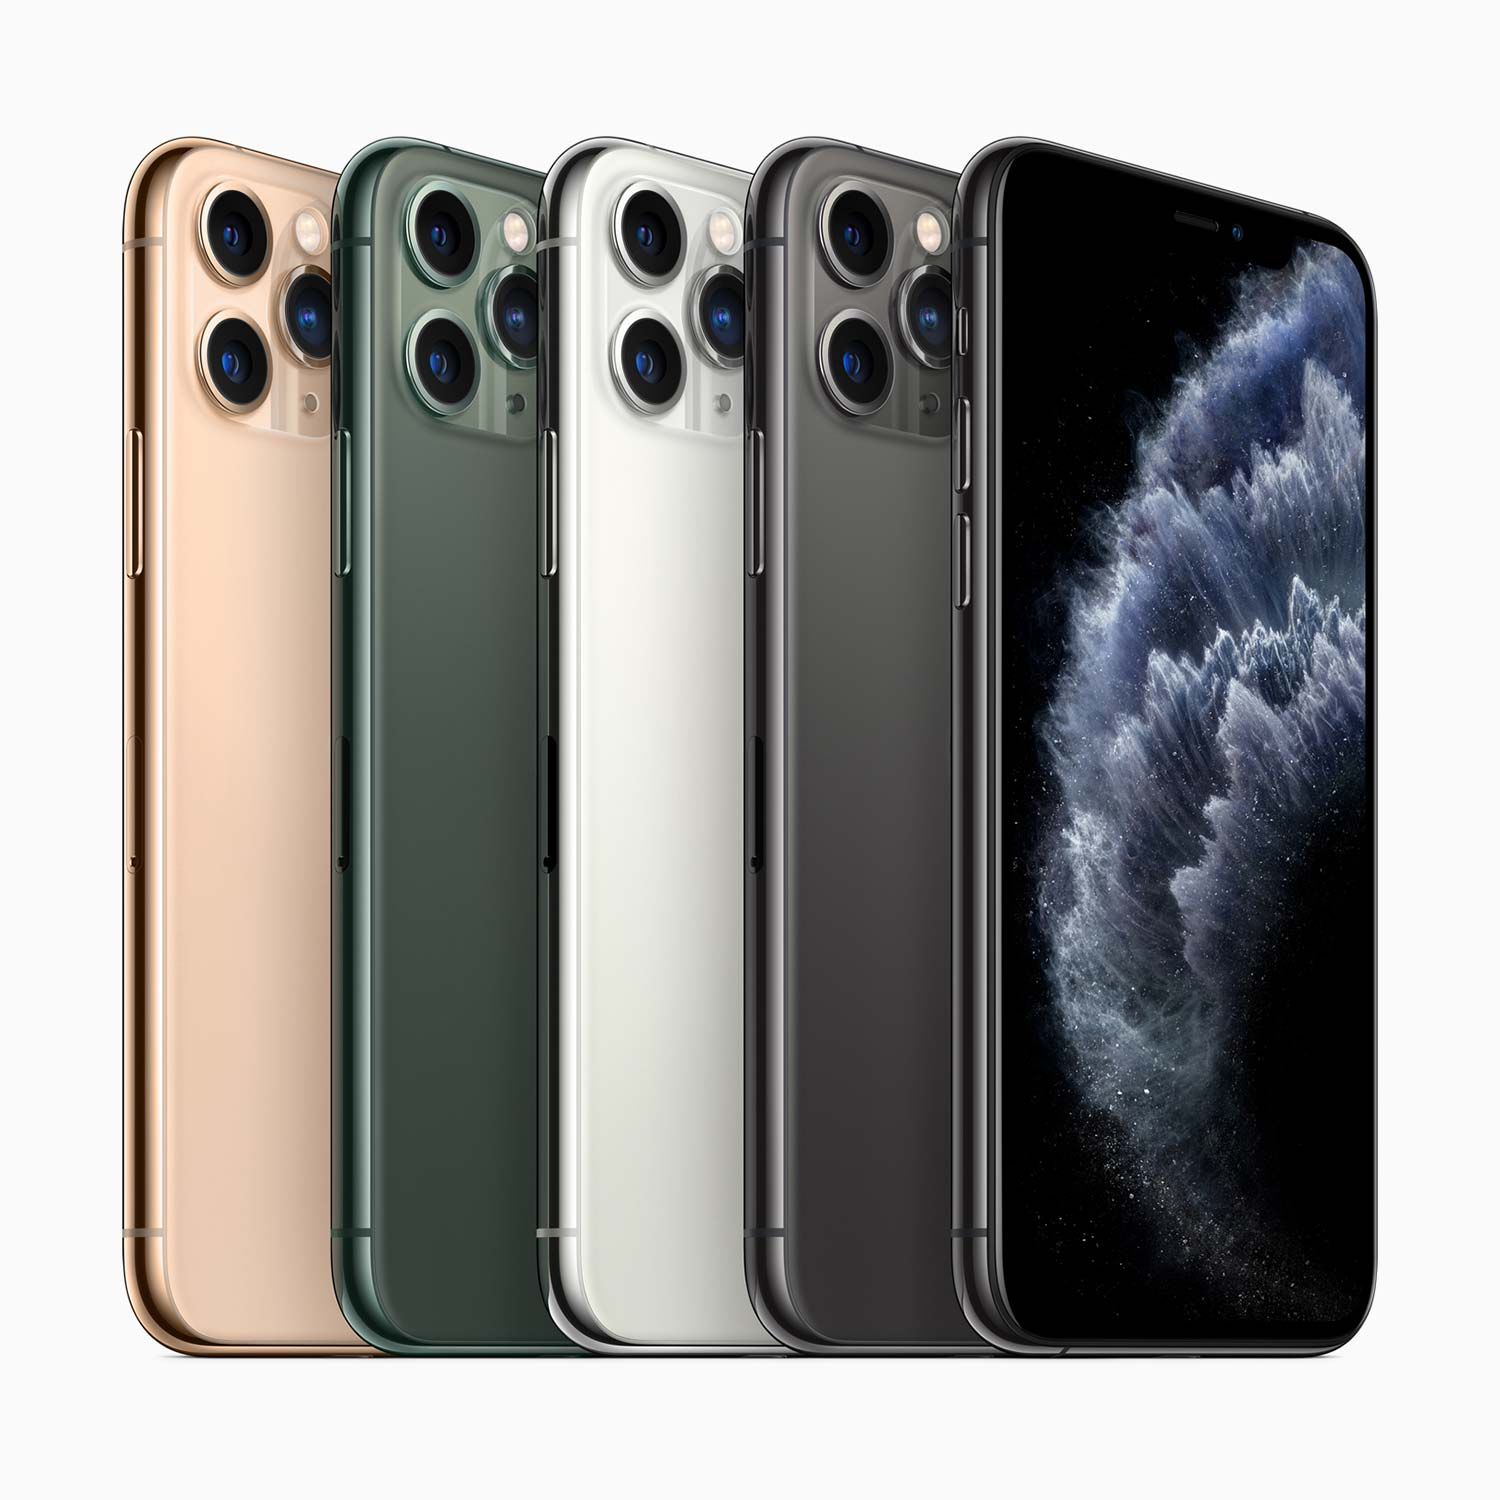 iPhone 11 Pro and iPhone 11 Pro Max colours